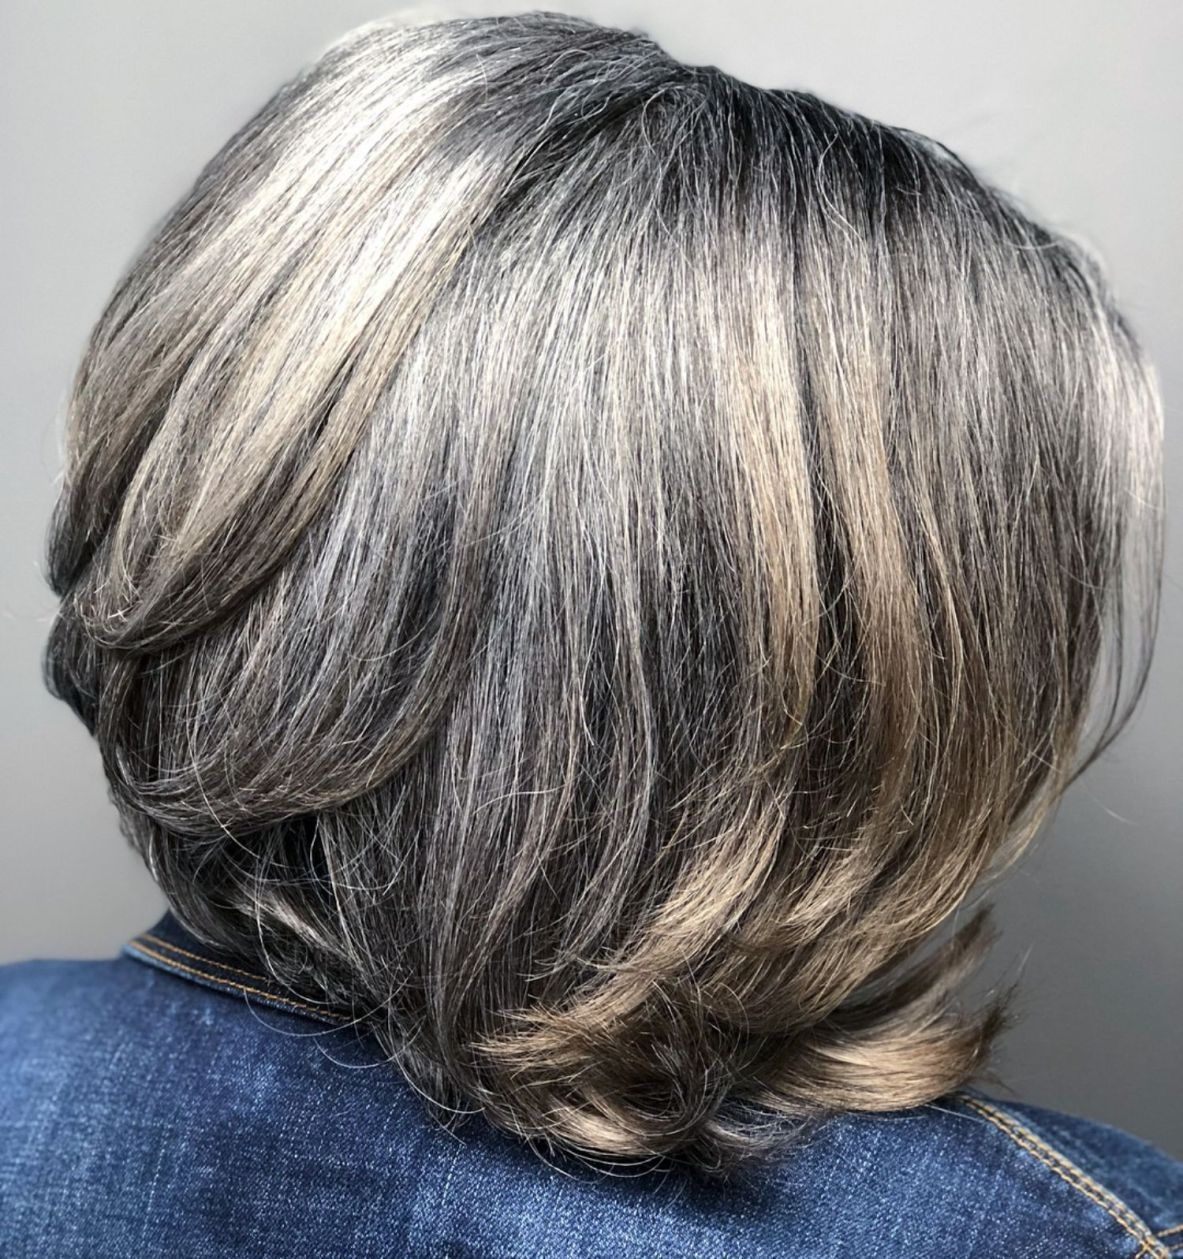 60 gorgeous gray hair styles in 2019 | thick hair styles